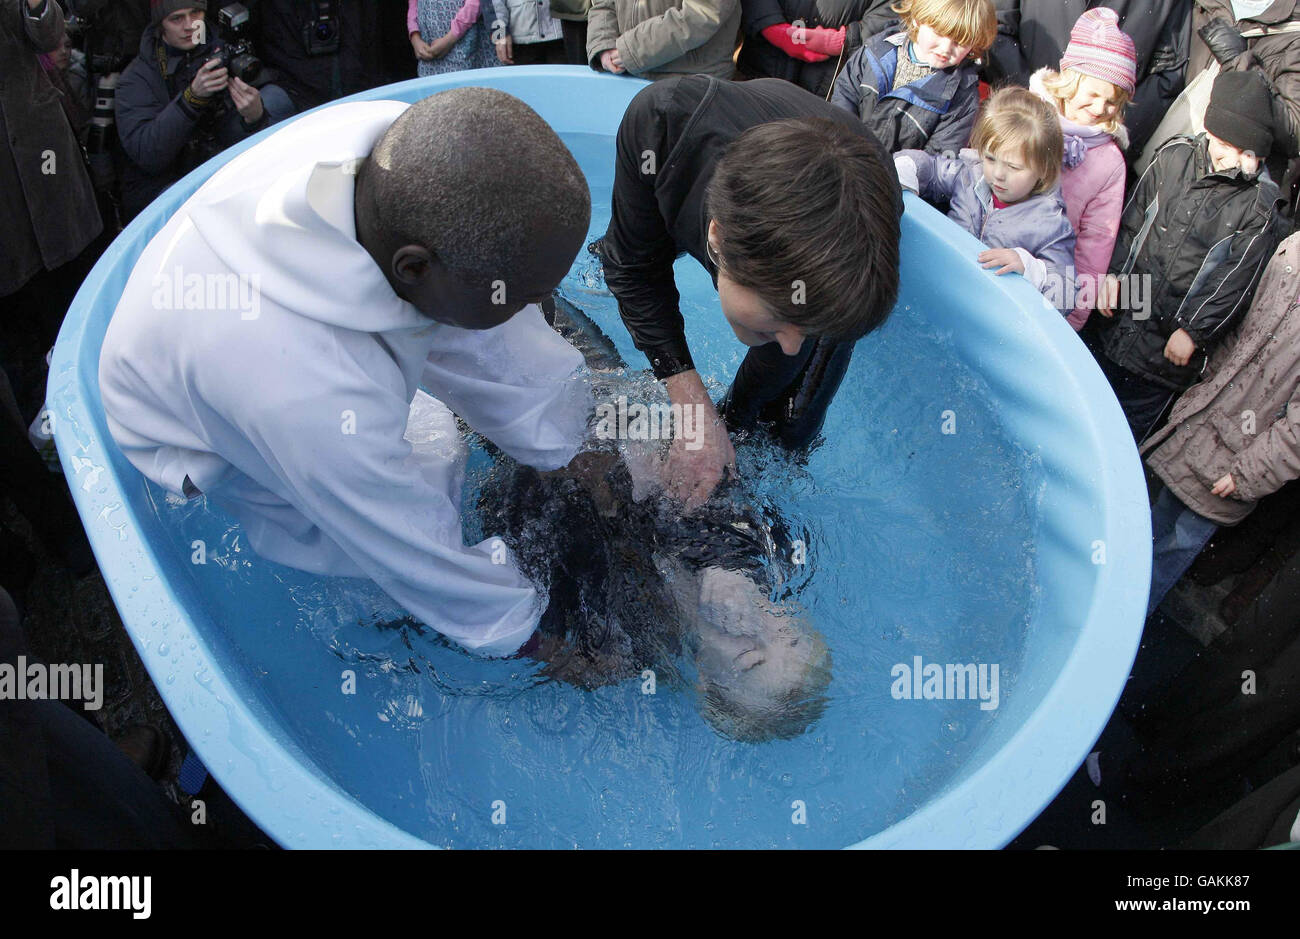 Christians take the plunge - Stock Image